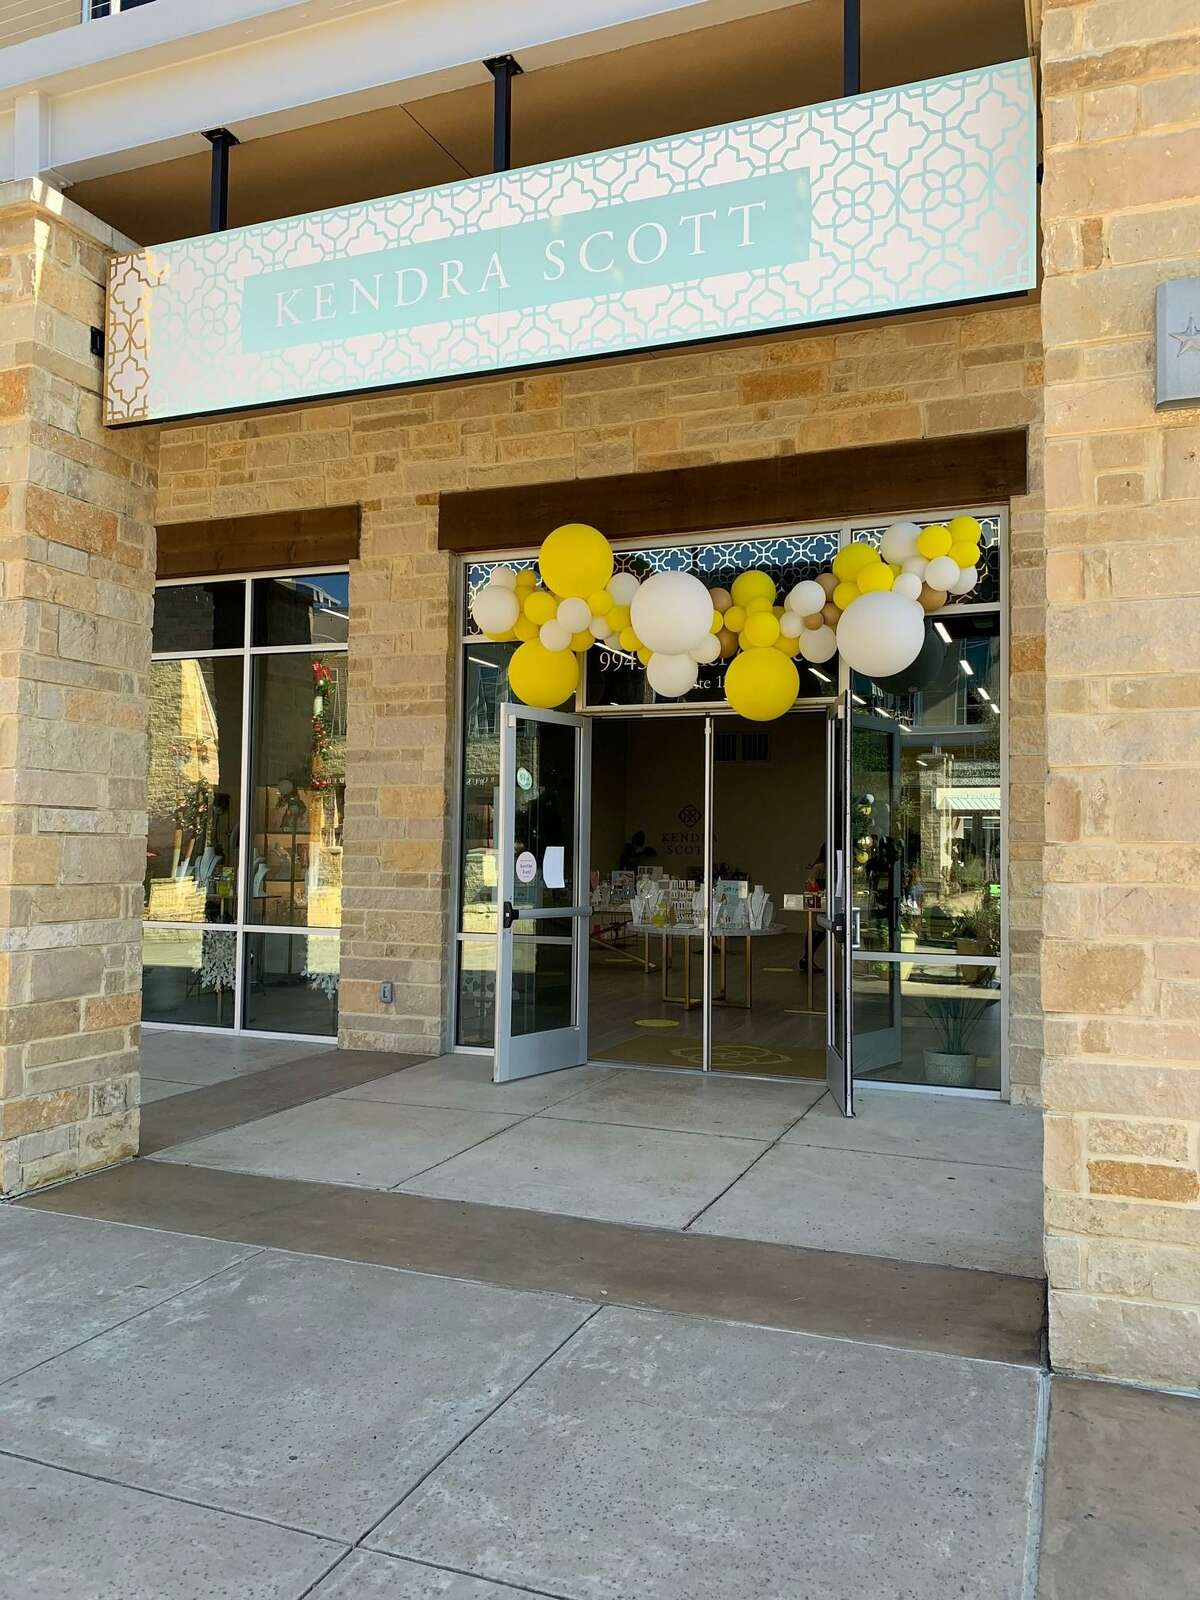 Kendra Scott has signed an agreement to a permanent space at The Boardwalk at Town Lake in Cypress.